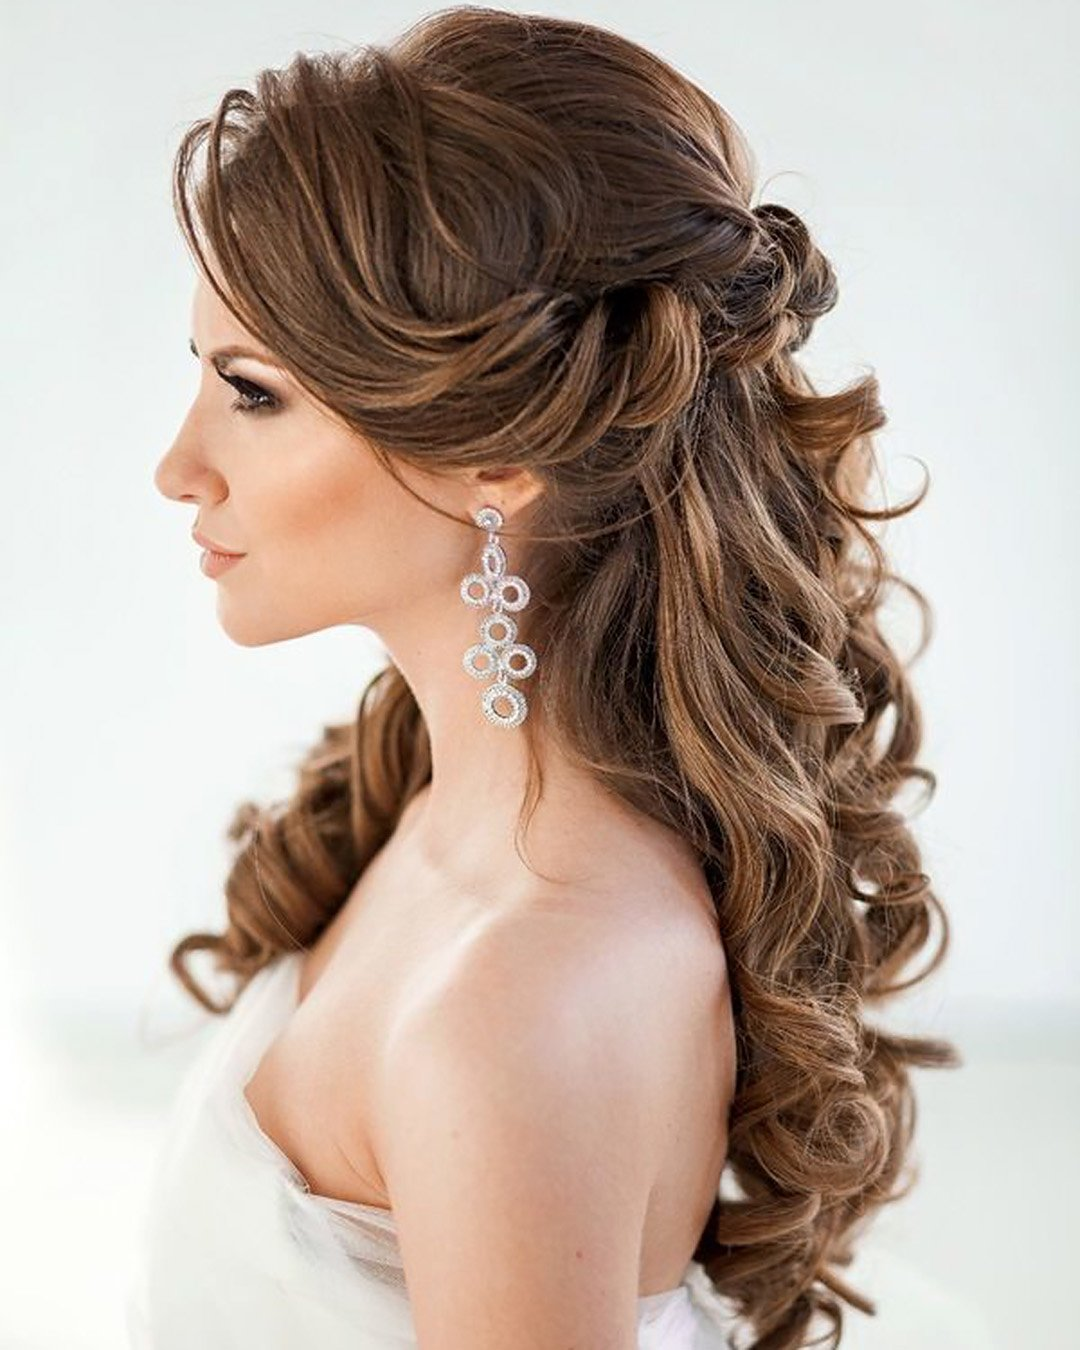 half up half down wedding hairstyles elegant with curls on brown hair elstile